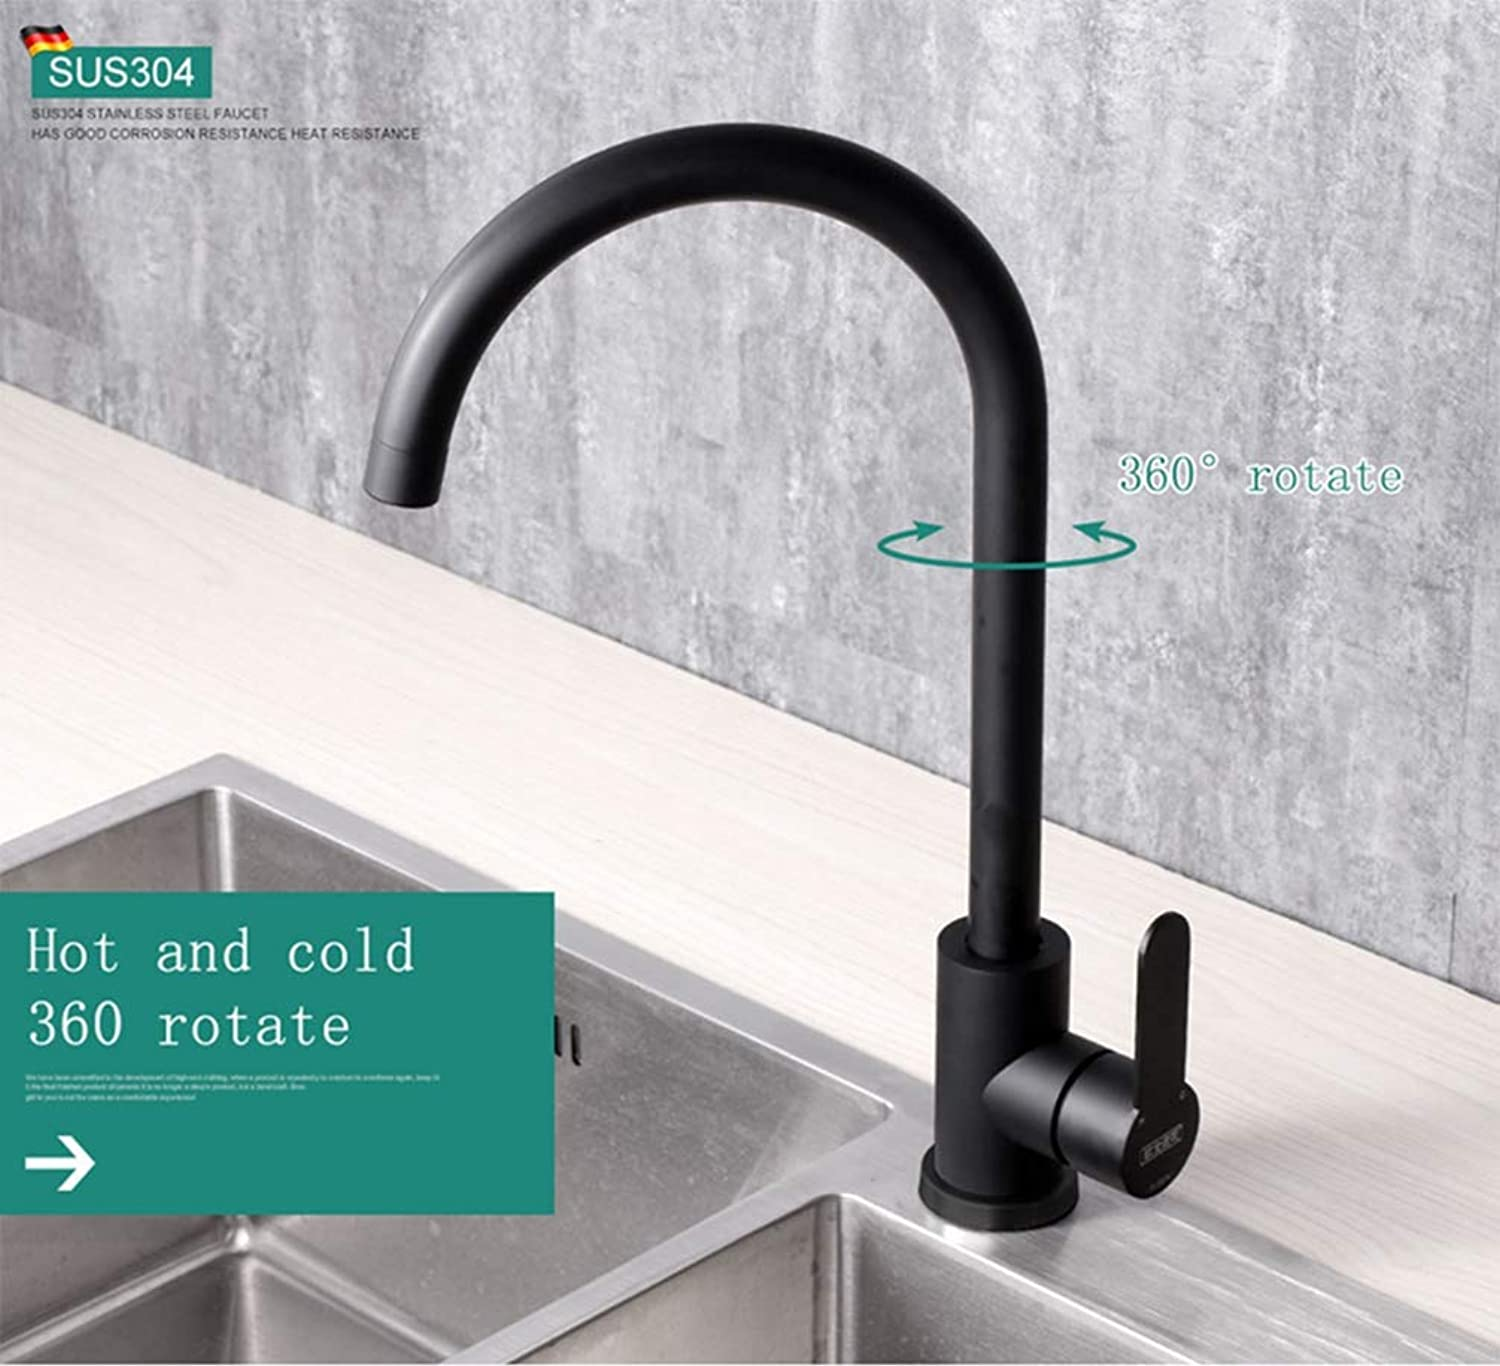 FZHLR 360 Degree Sink Kitchen Tap Black Surface 304 Stainless Steel Material Hot and Cold Water European Style Single Handle